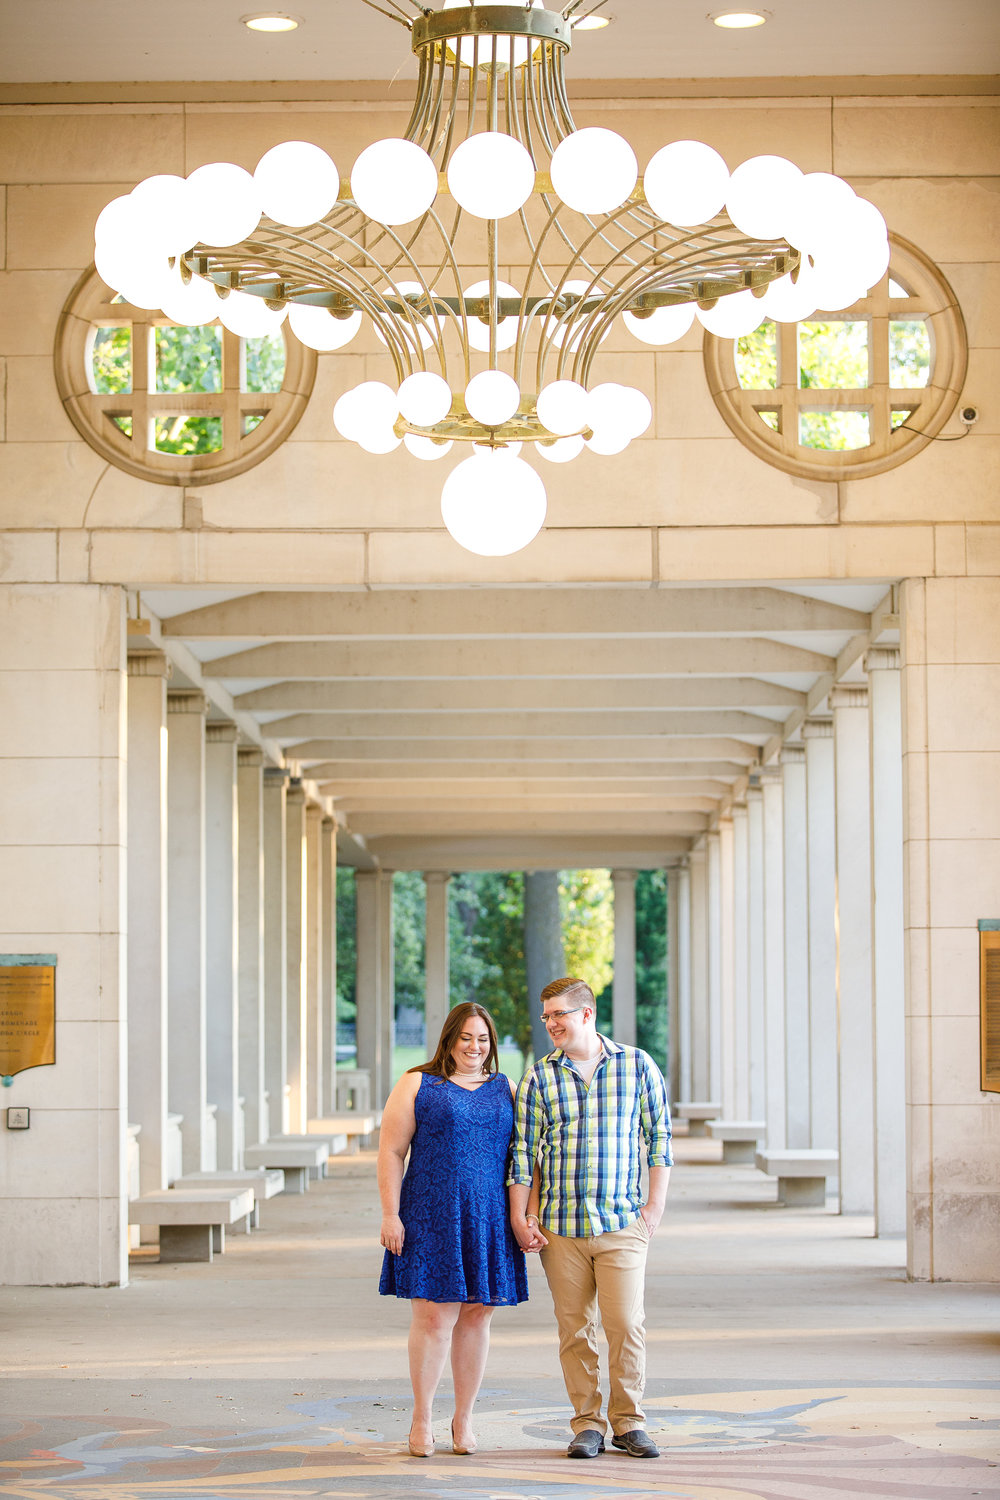 Busch Stadium and Forest Park Engagement Photos by St Louis Wedding Photographers and Videographers Oldani Photography 33.jpg